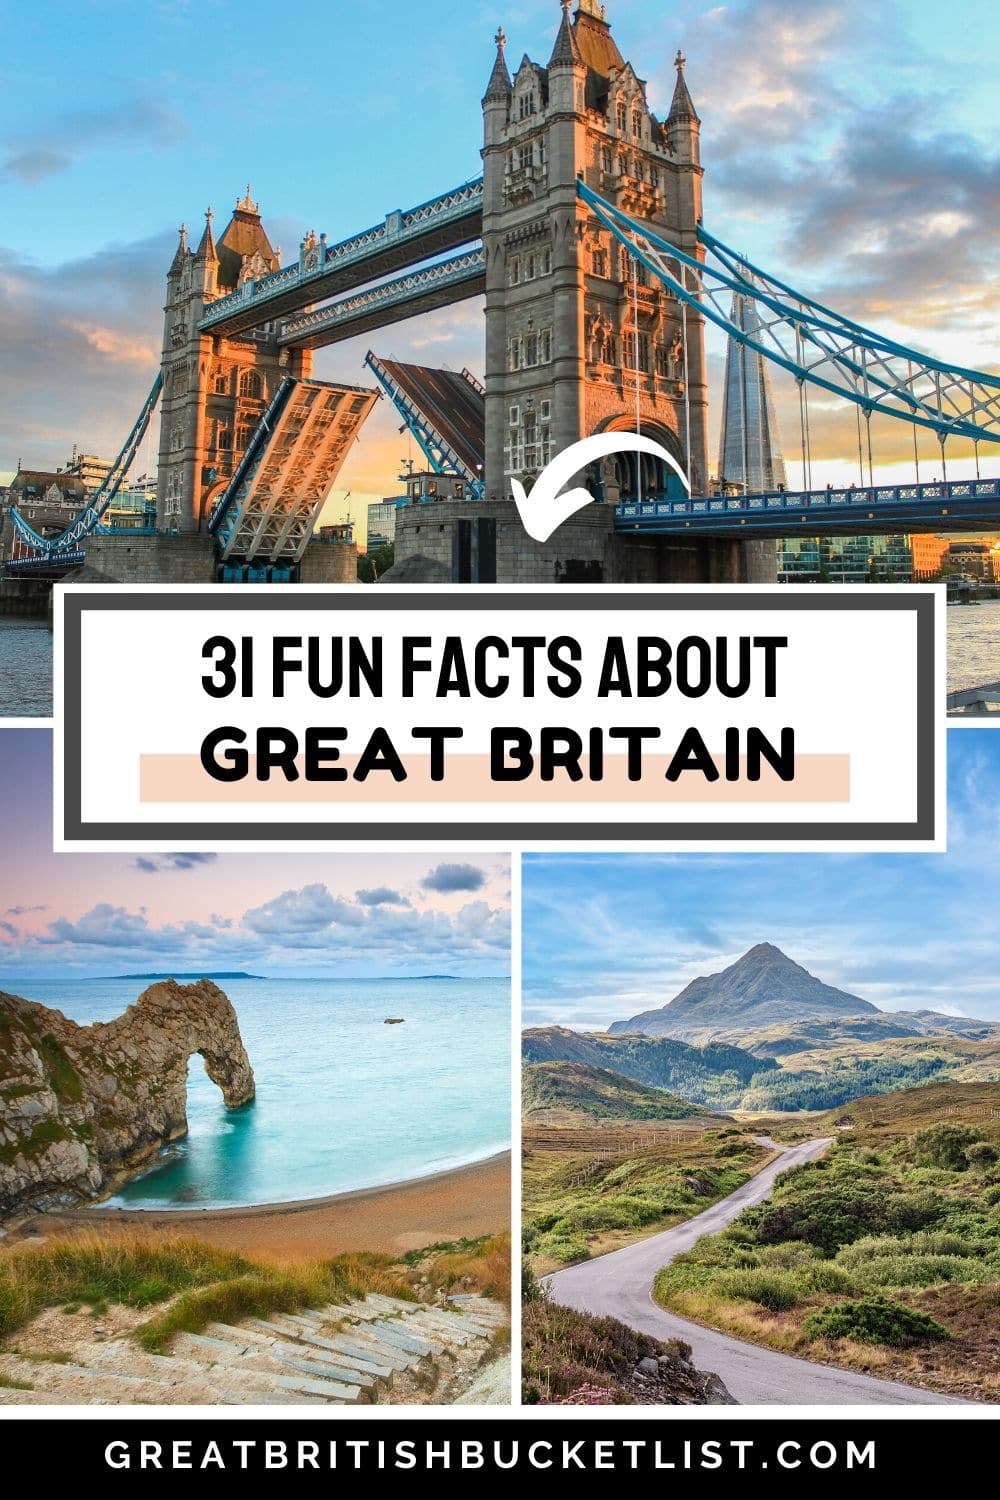 31 fun facts about Great Britain